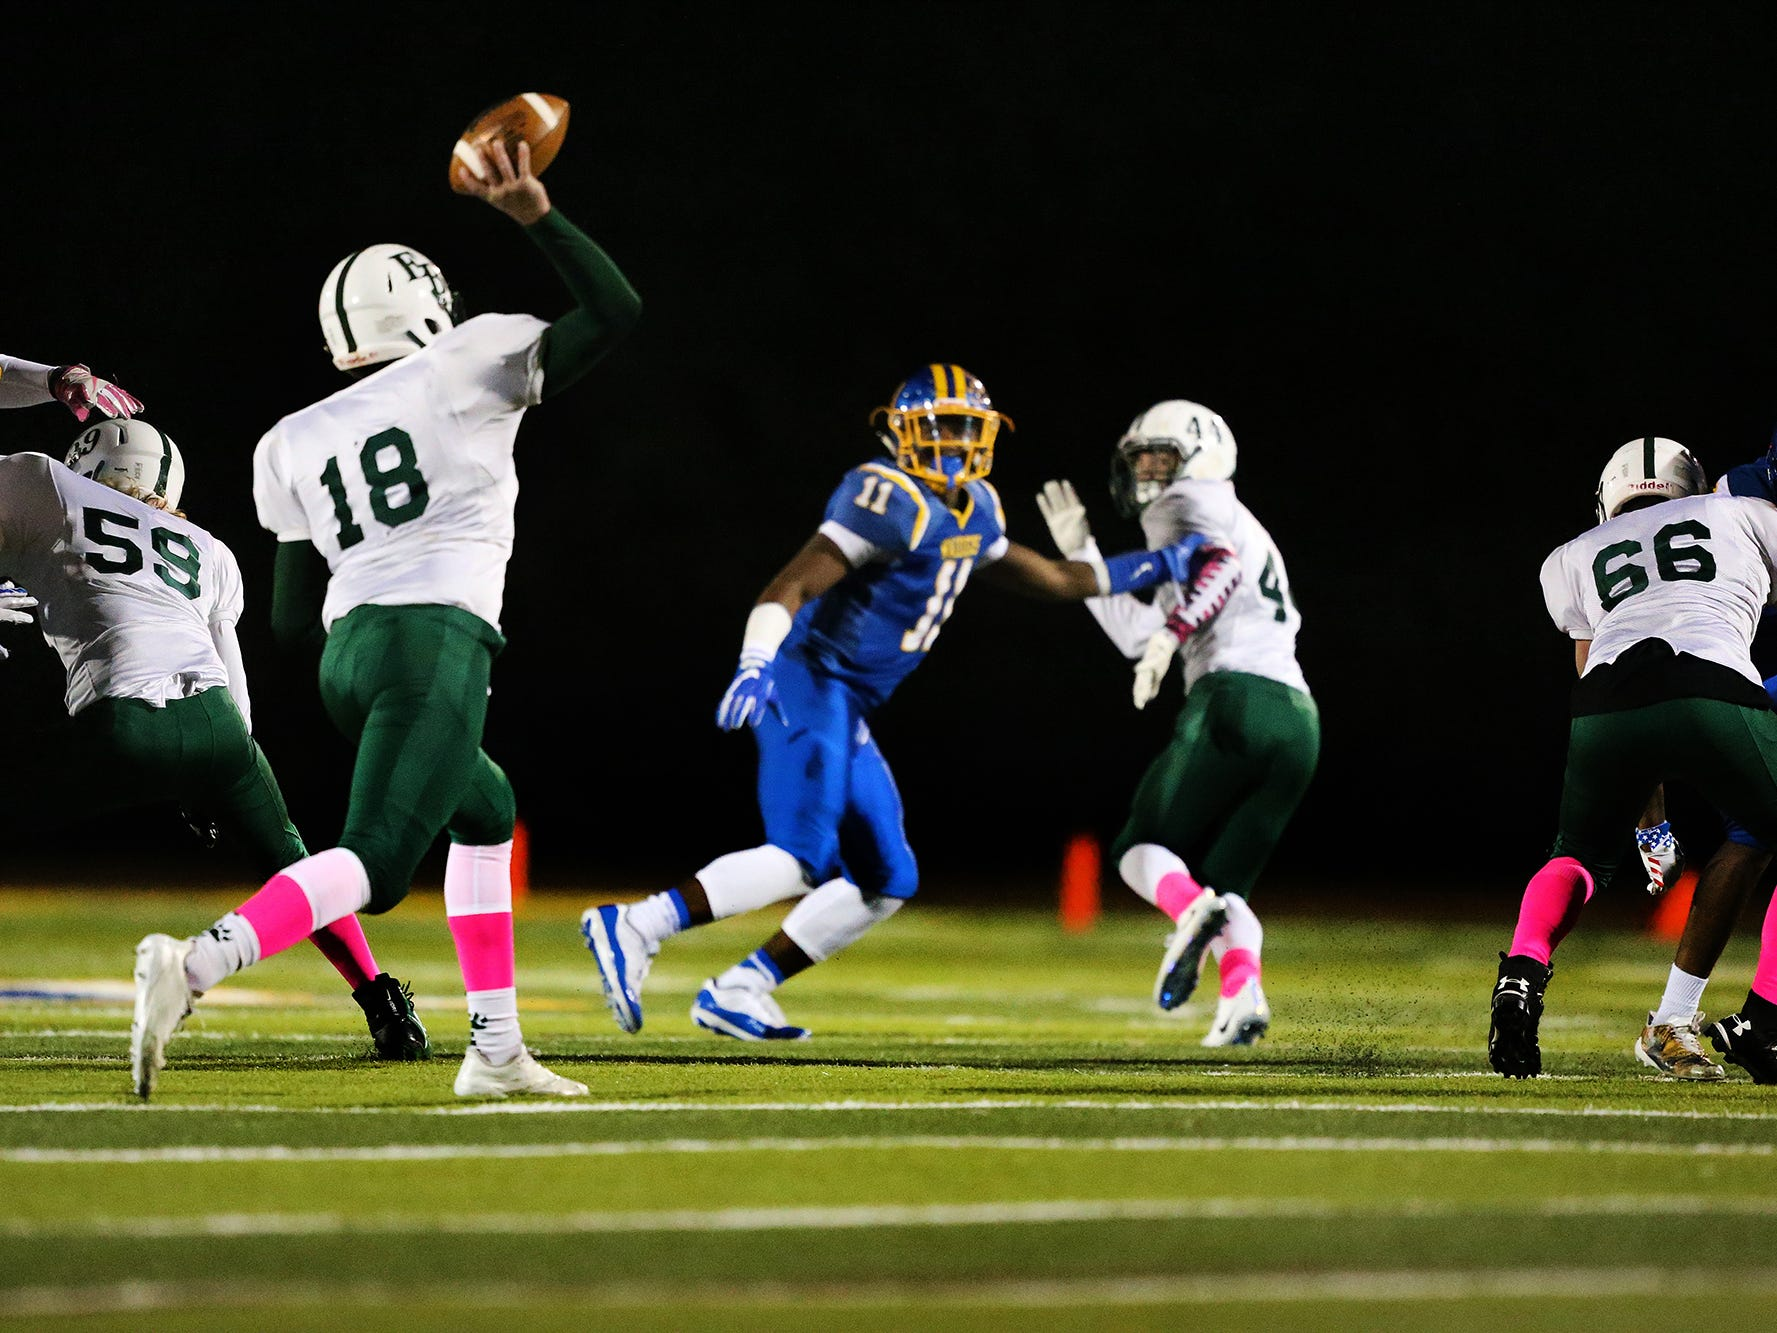 East Brunswick quarterback Tim Gudzak (18) throws a pass during the first half Friday, Oct. 26, 2018.